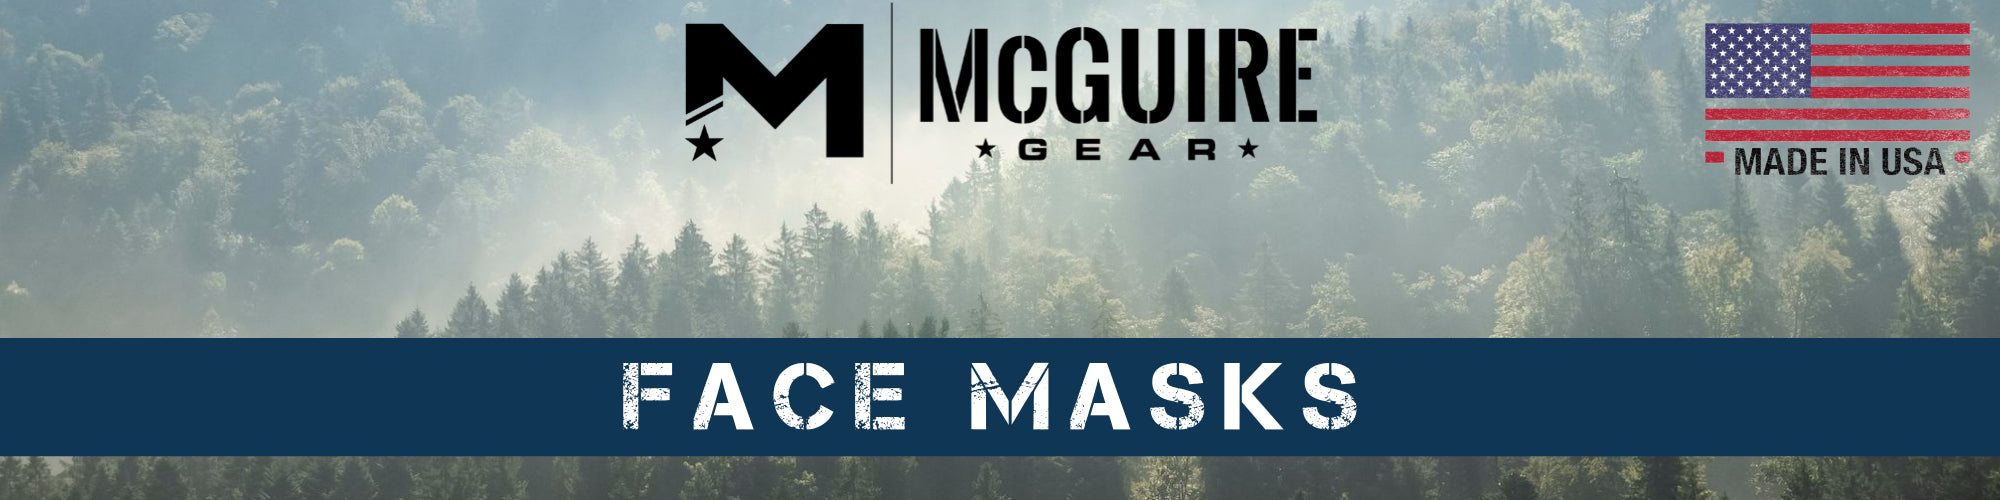 Made in USA Face Mask